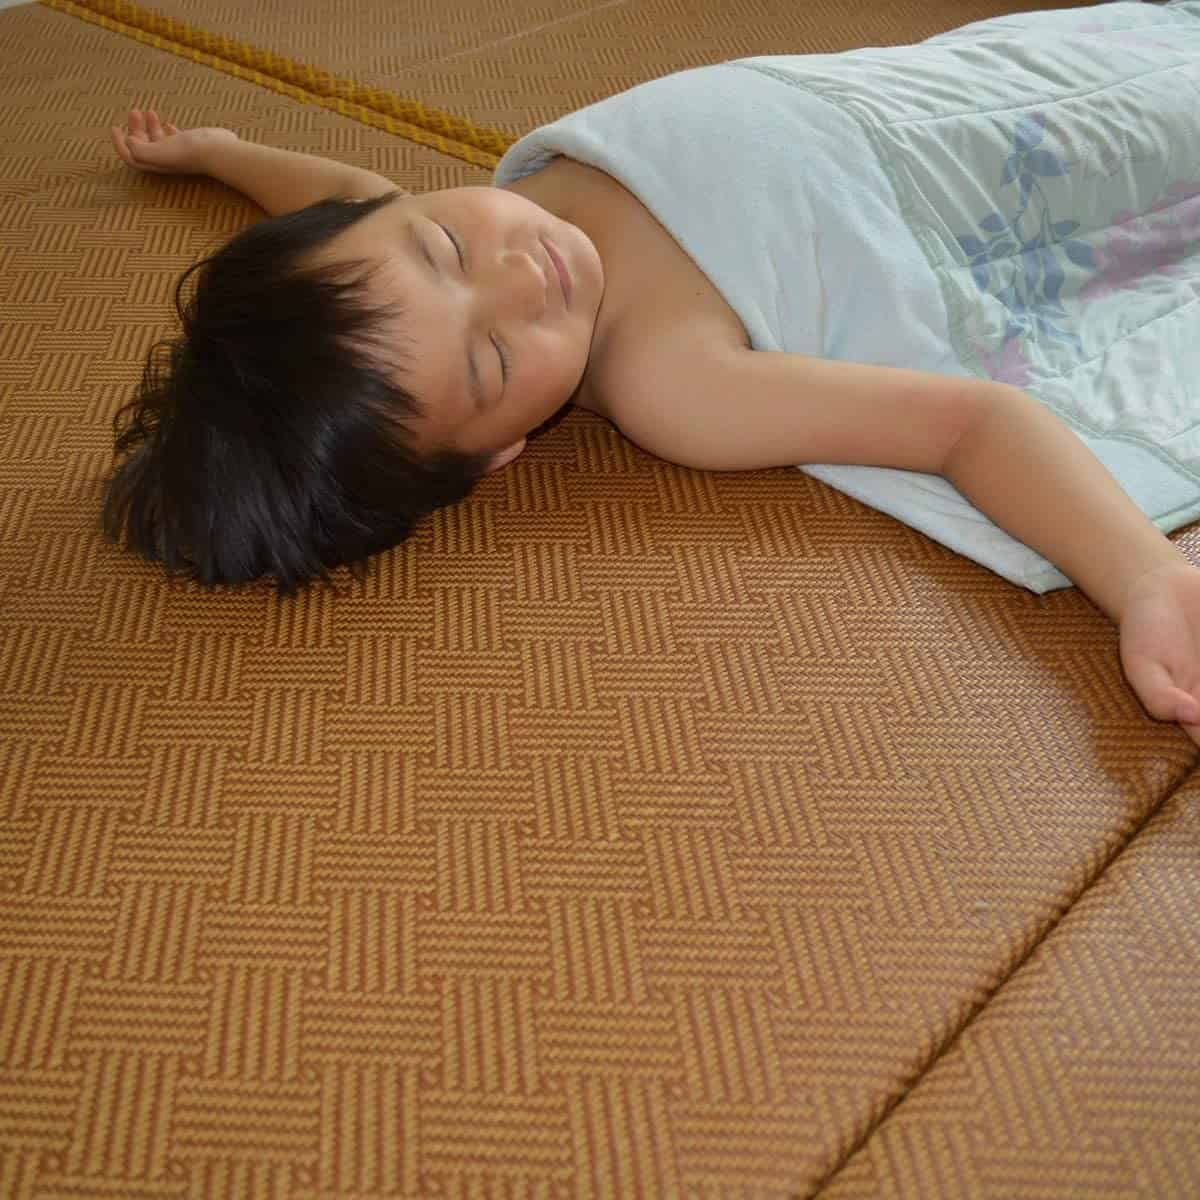 Best tatami mat for sleeping and back pain & best for allergy sufferers- MustMat Japanese Traditional Futon Mattress with sleeping child